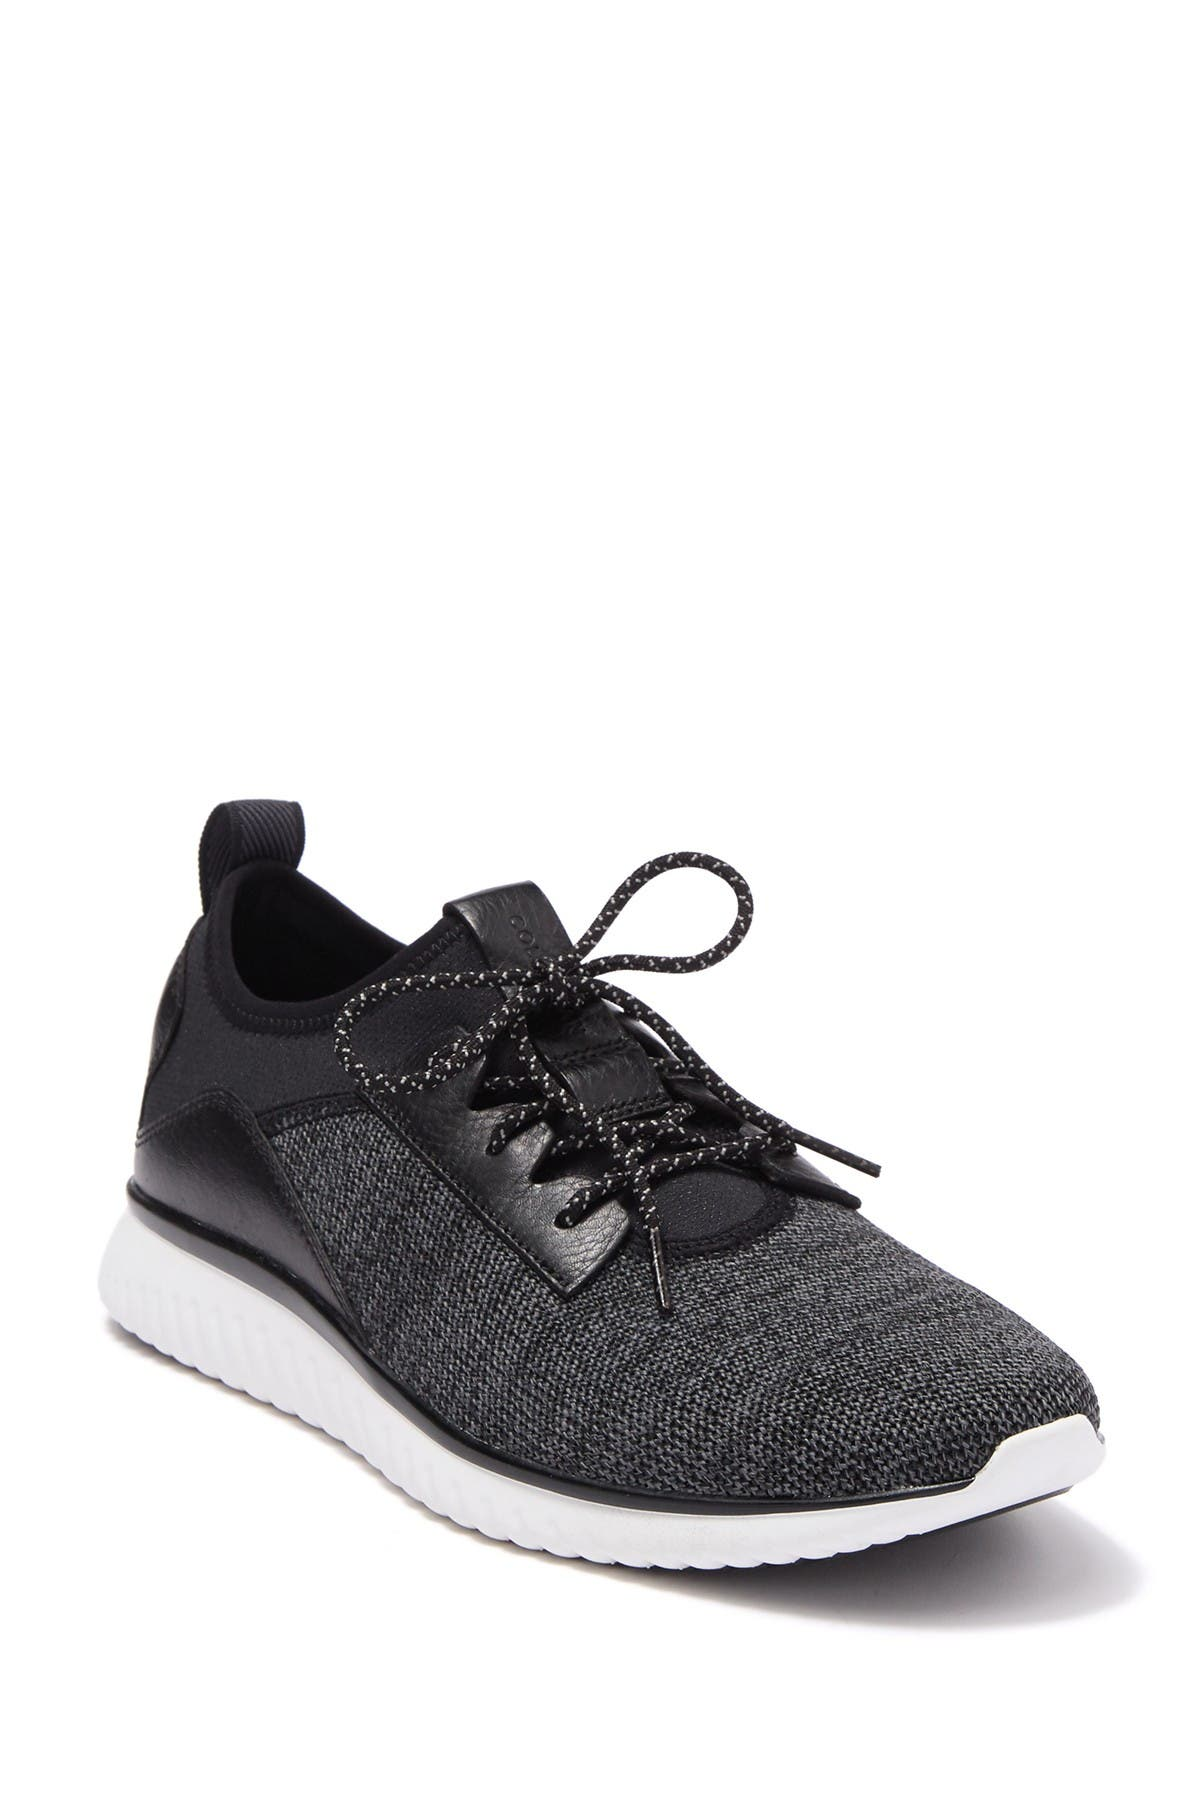 Cole Haan | Grand Motion Knit Sneaker